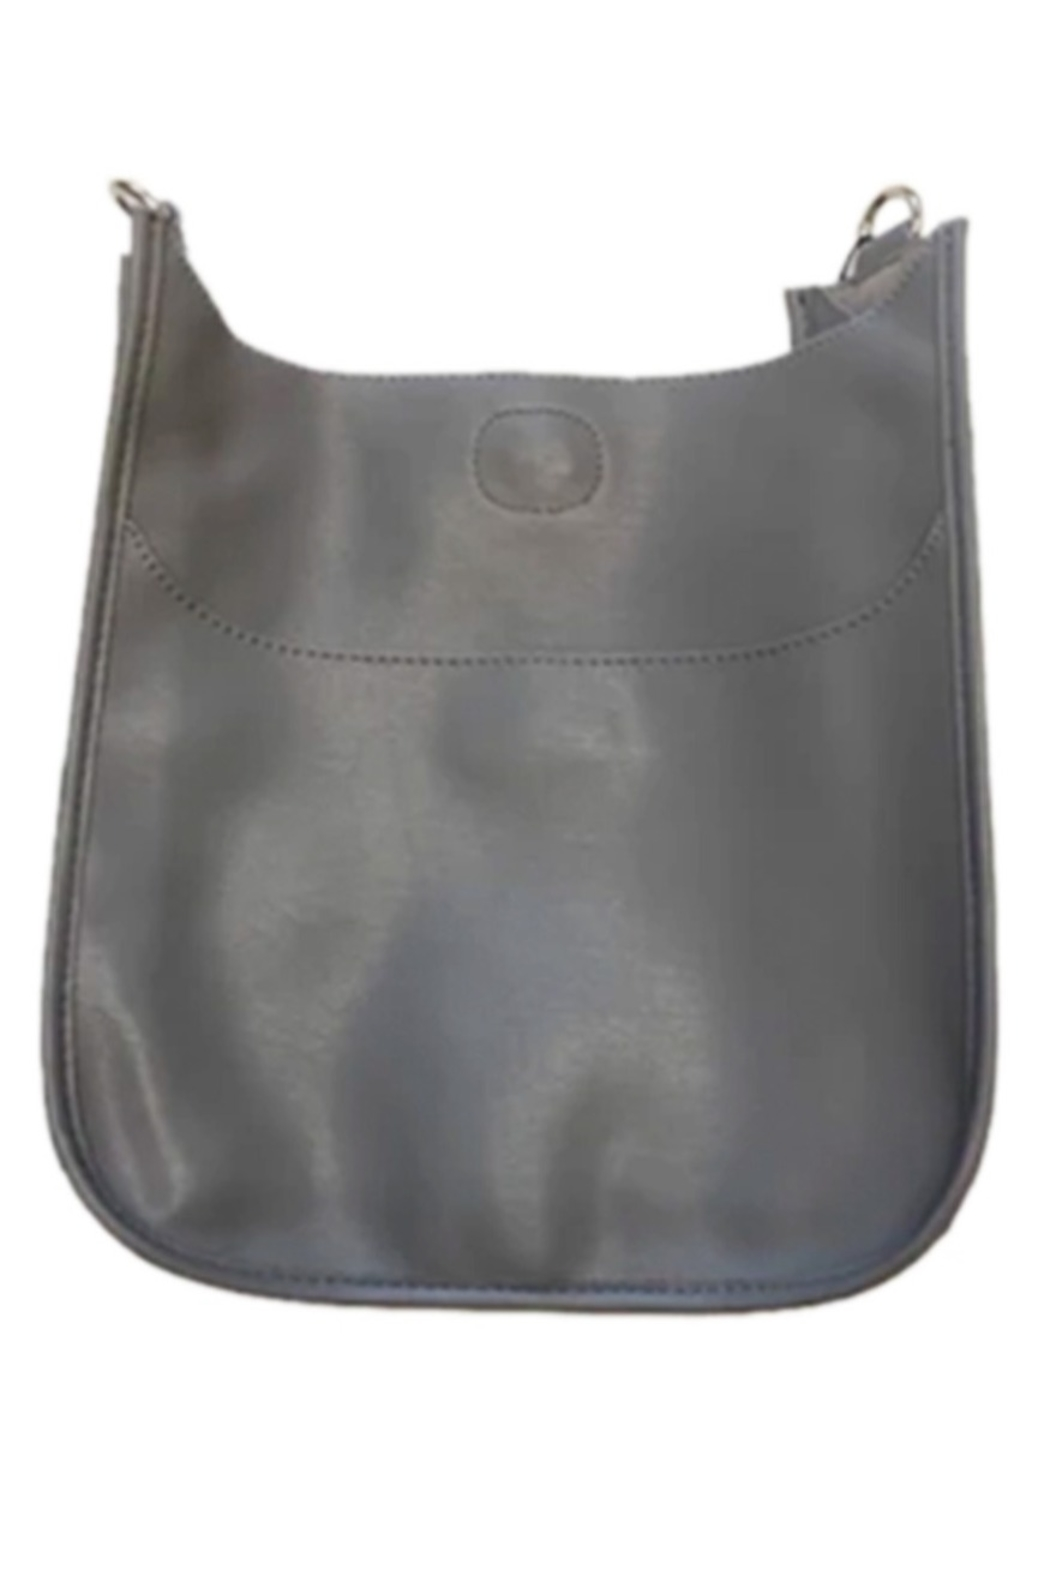 Ahdorned Soft Faux Leather Messenger - Strap not included - Main Image